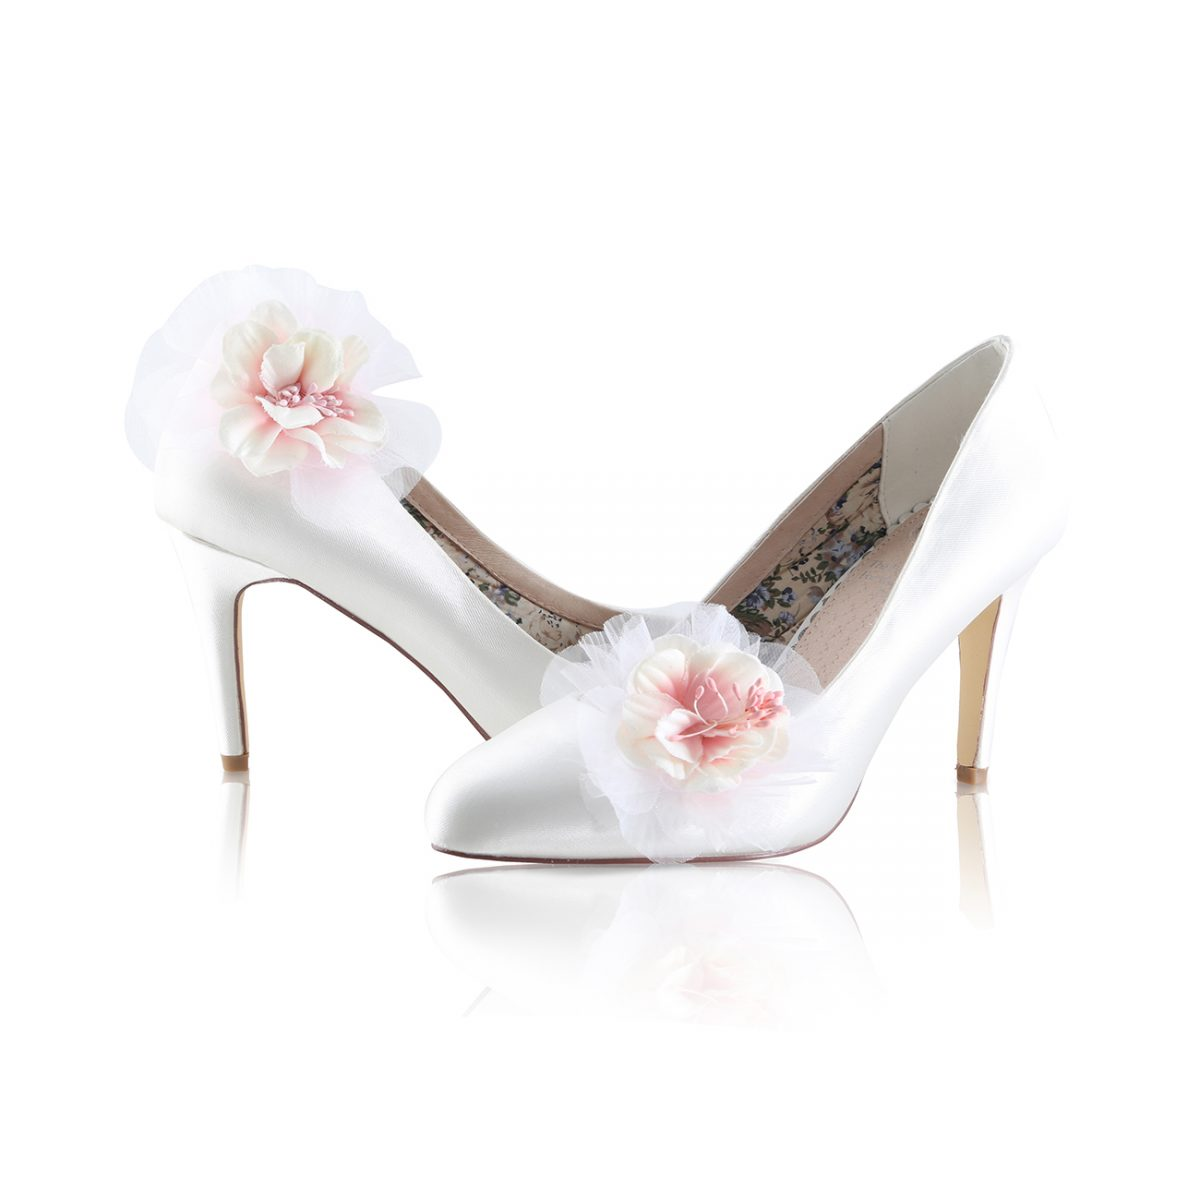 Perfect Bridal Apple Shoe Trim - Pale Pink